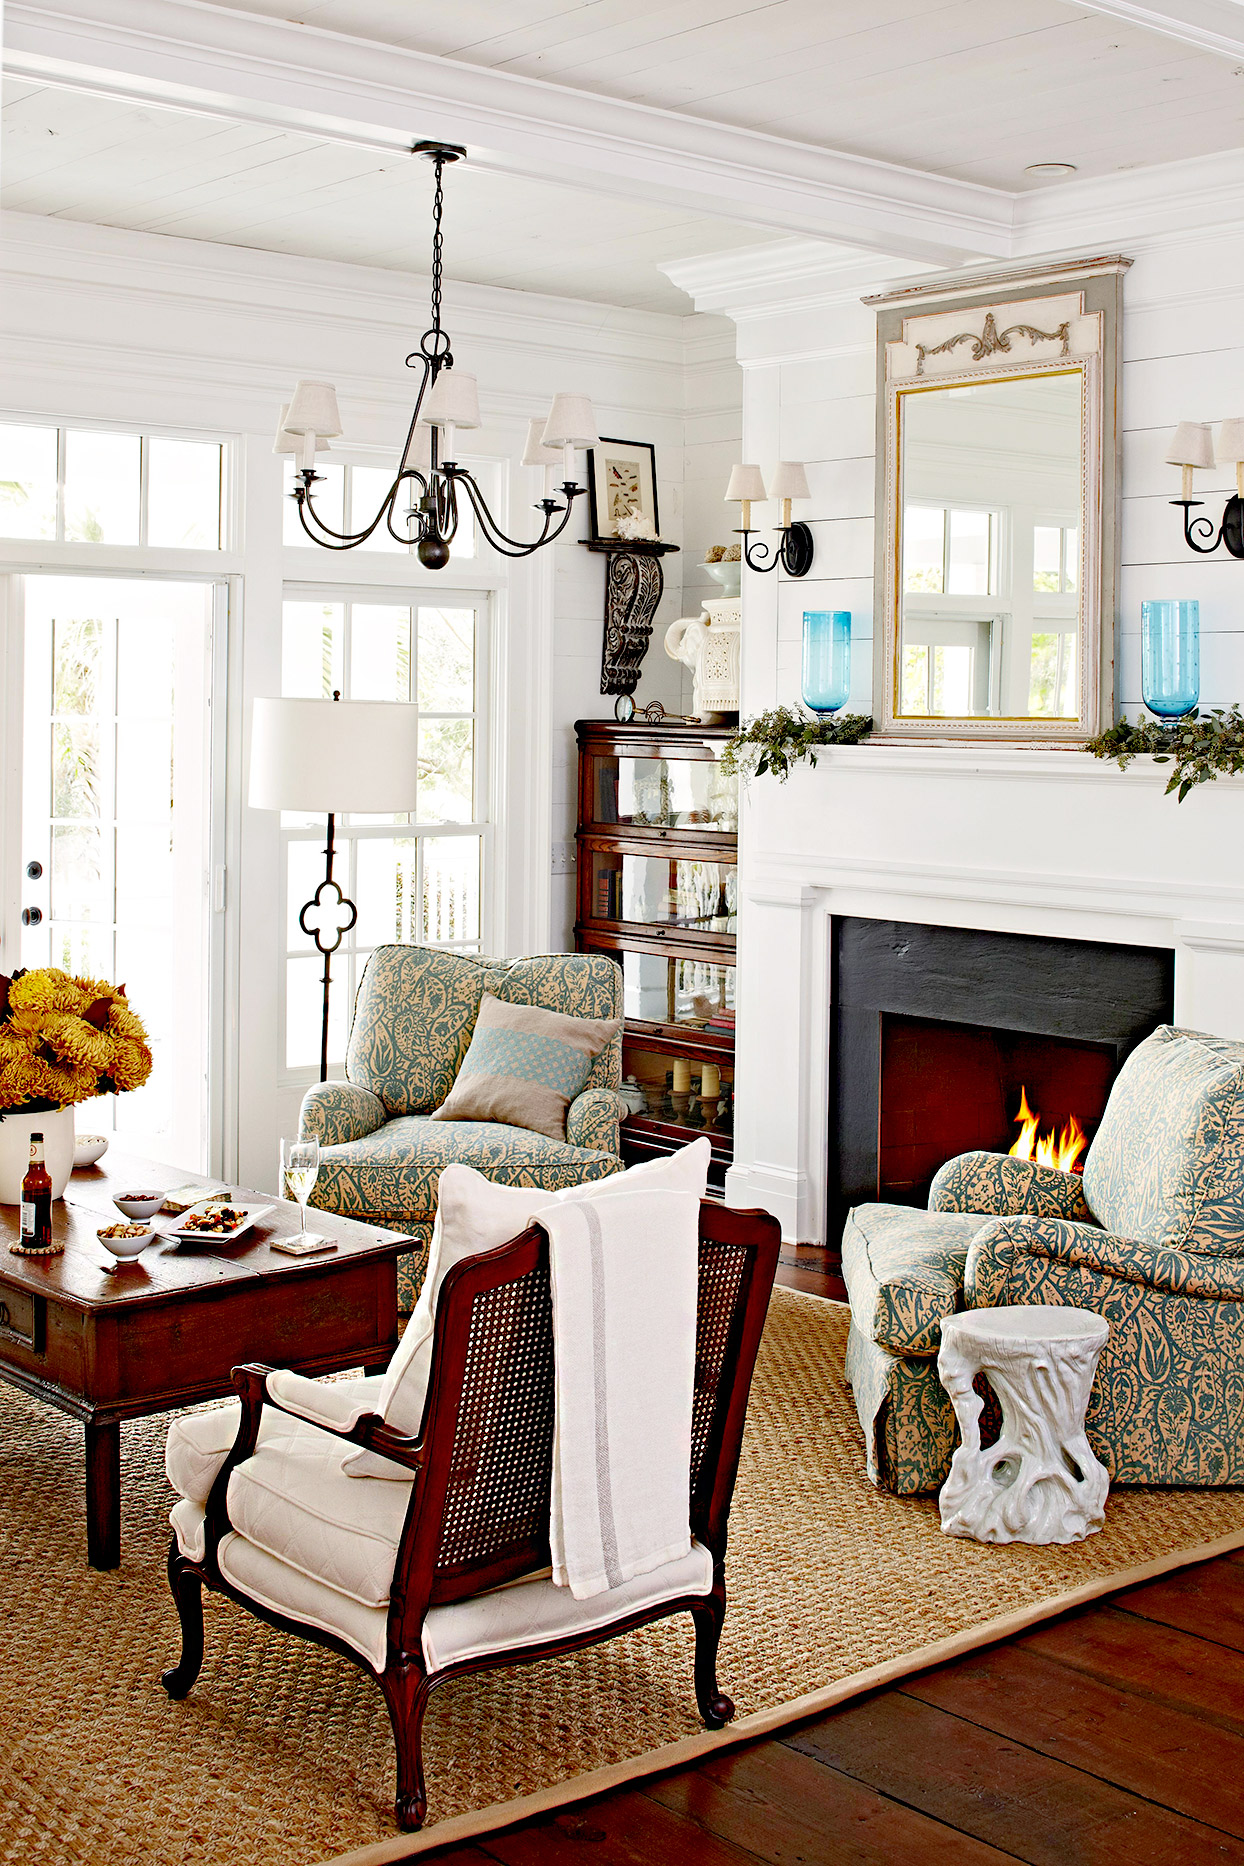 Living room with fireplace, chairs, and coffee table